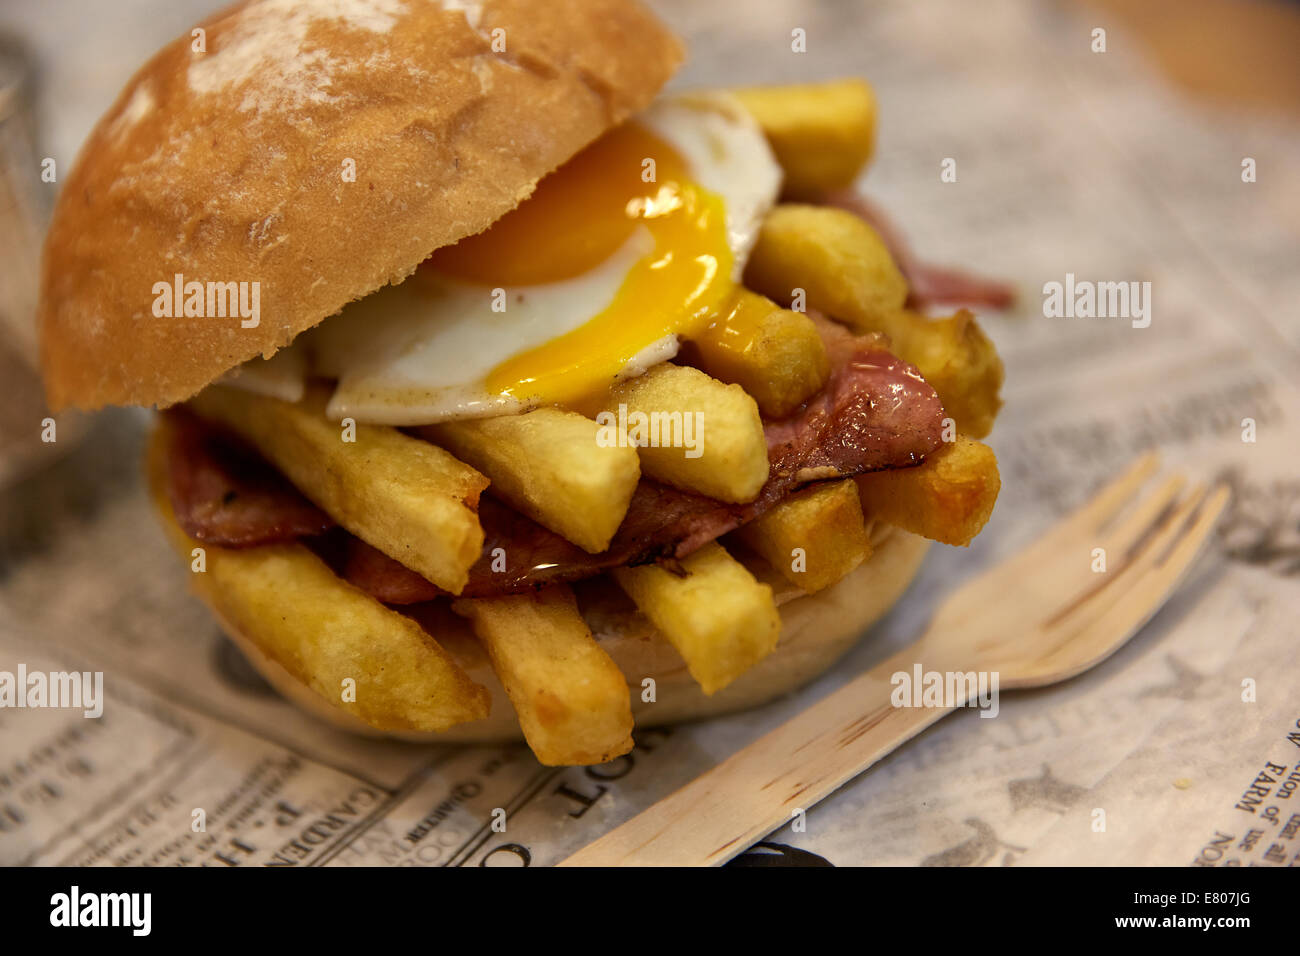 EGG AND CHIP BUTTY SANDWICH BREAD ROLL - Stock Image